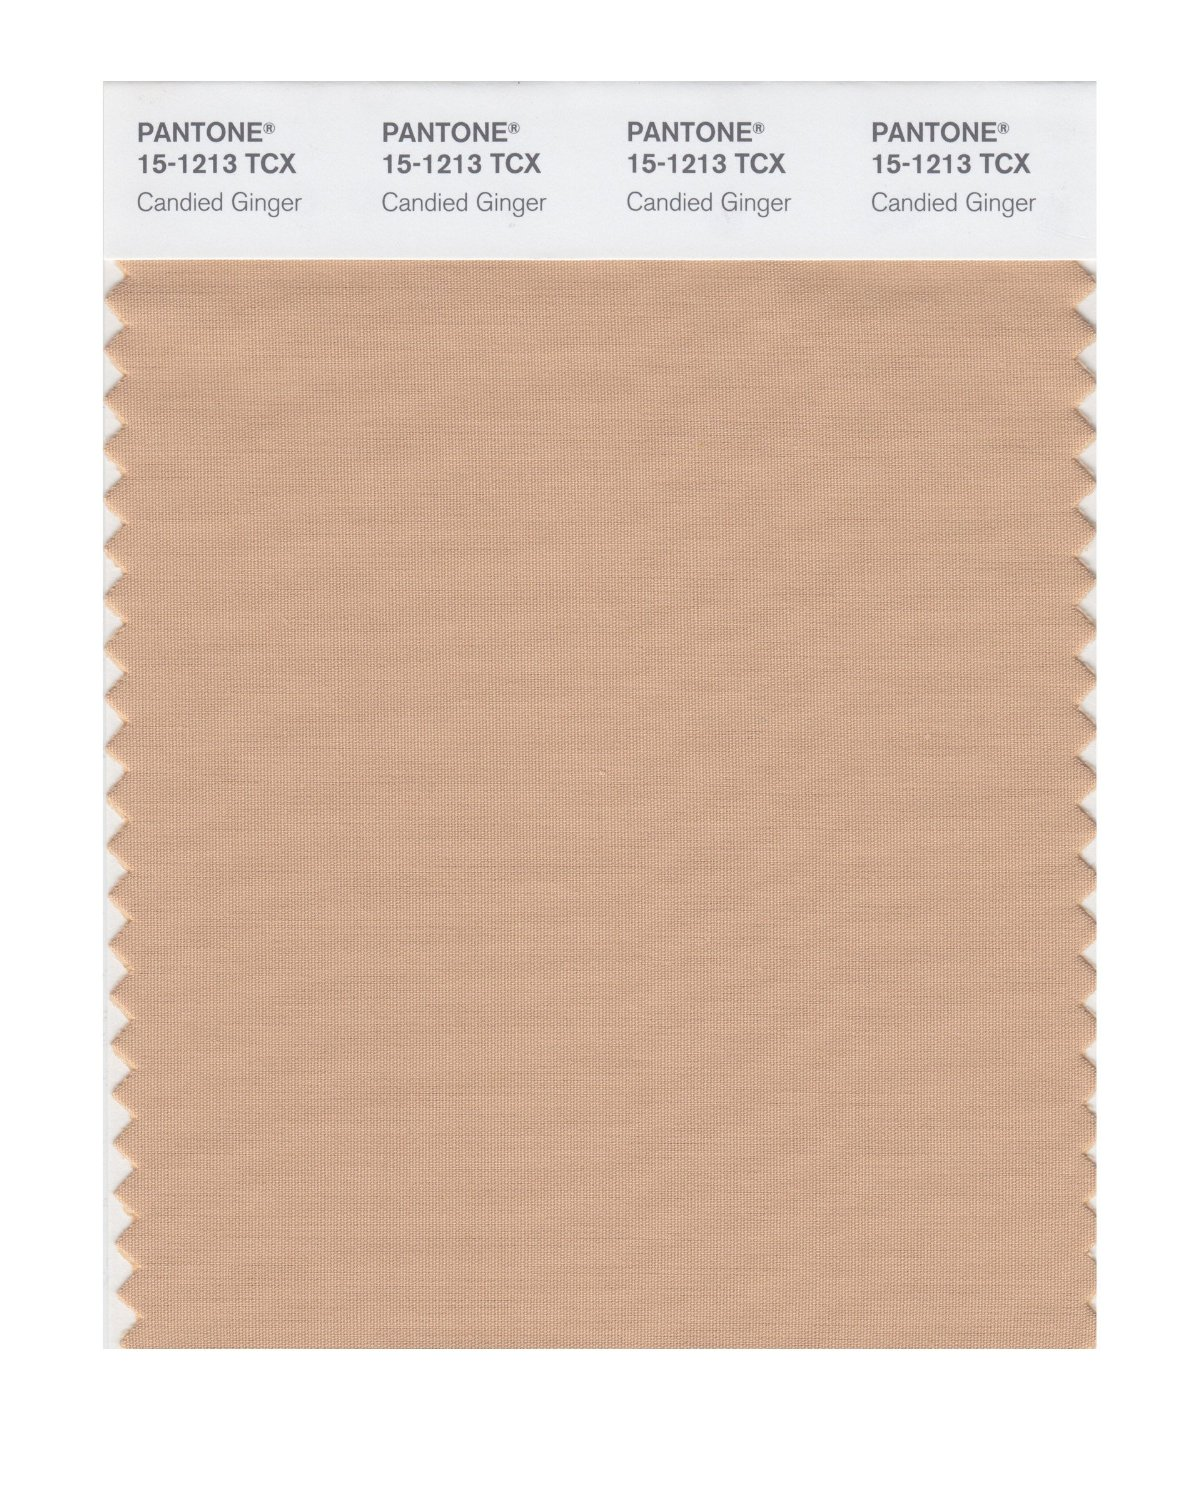 Pantone Smart Swatch 15-1213 Candied Ginger